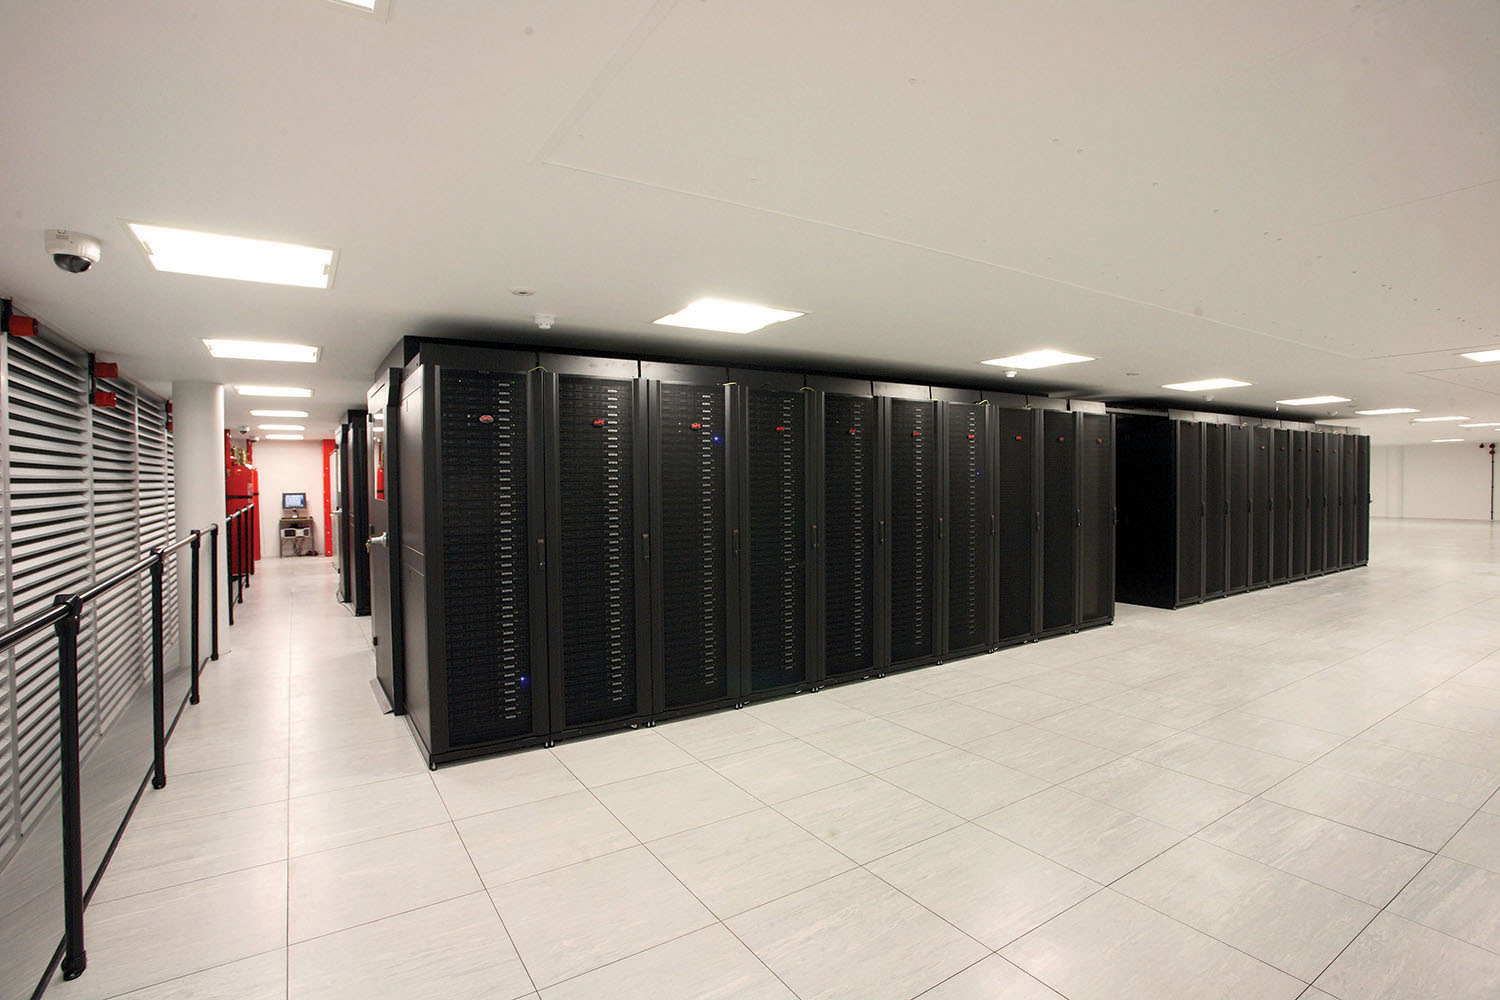 Figure 2. Phase 1 Data Center (2008)